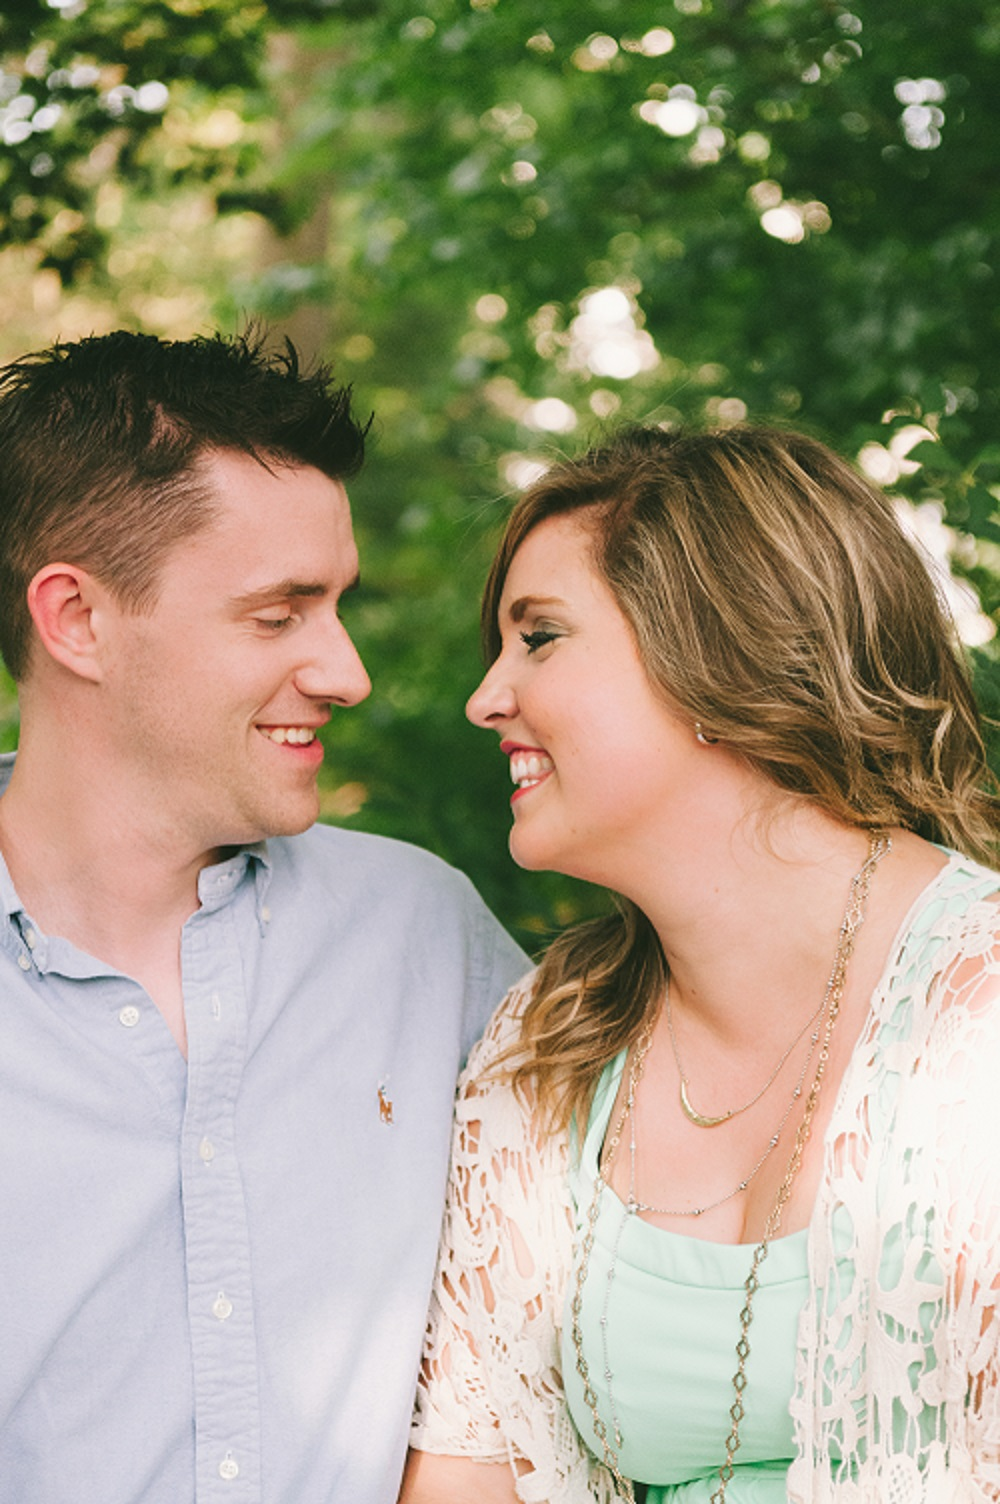 Spring outdoor engagement photo by Shunkwiler Photo